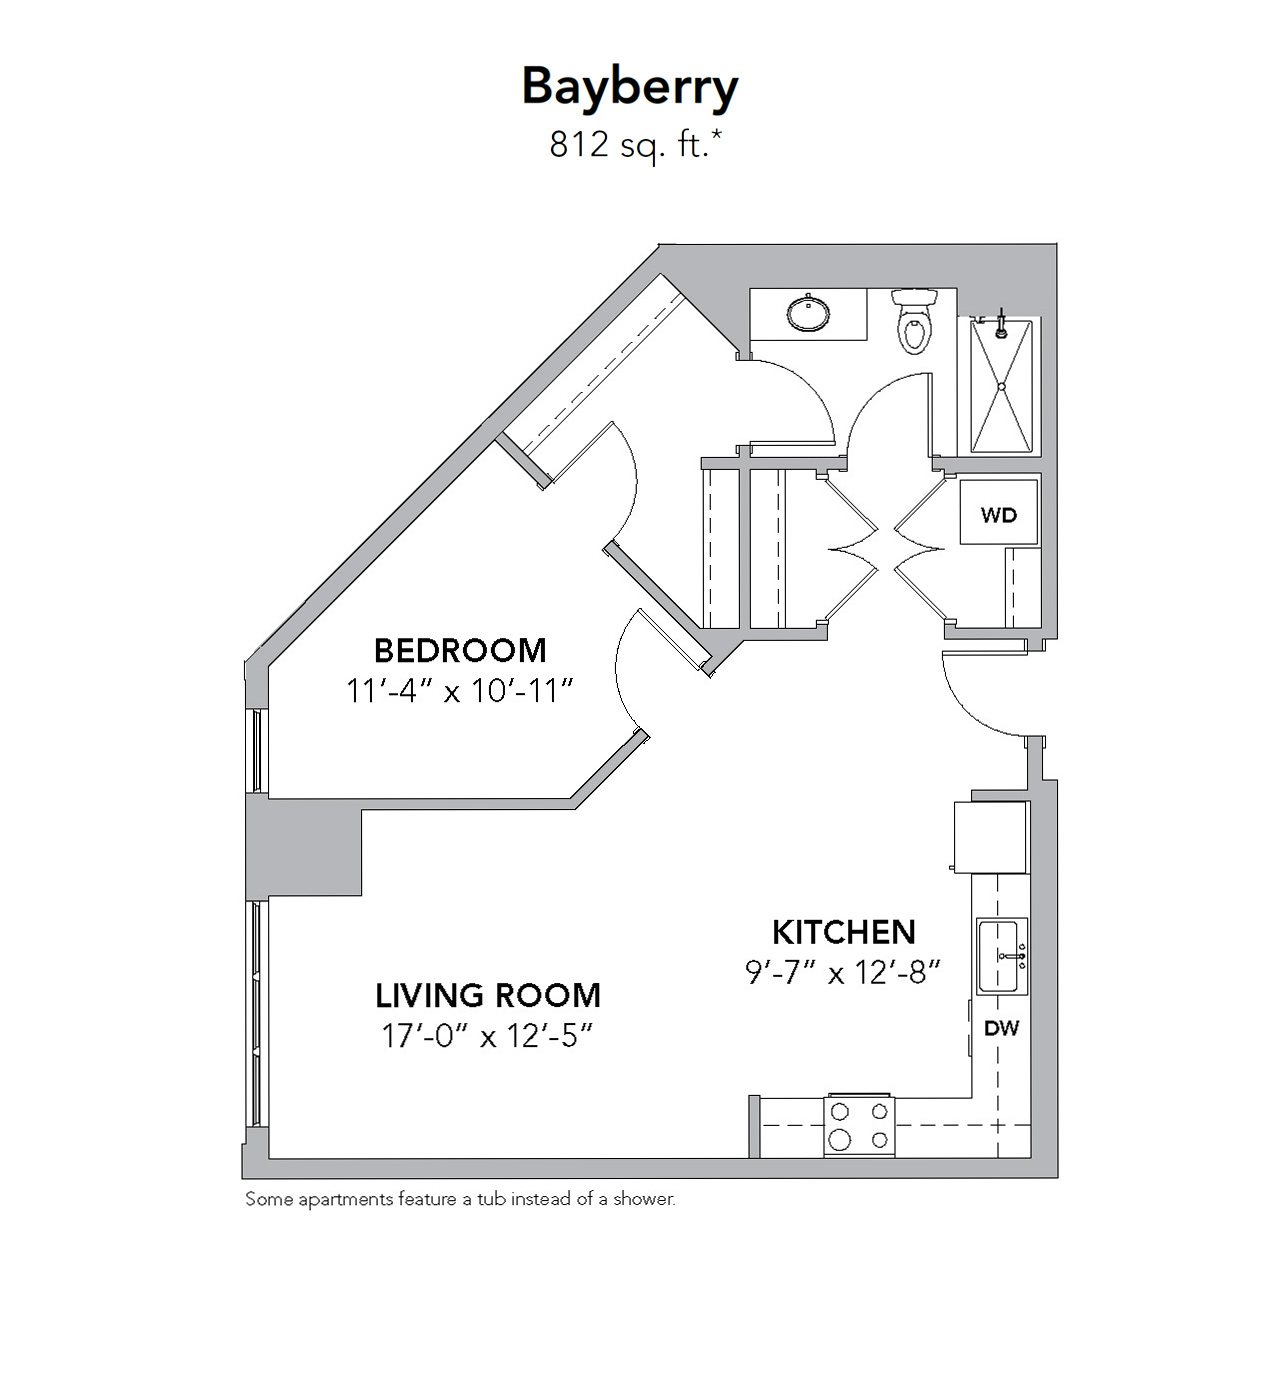 Tamarisk NorthShore—Bayberry, 1 Bedroom Appartment Home